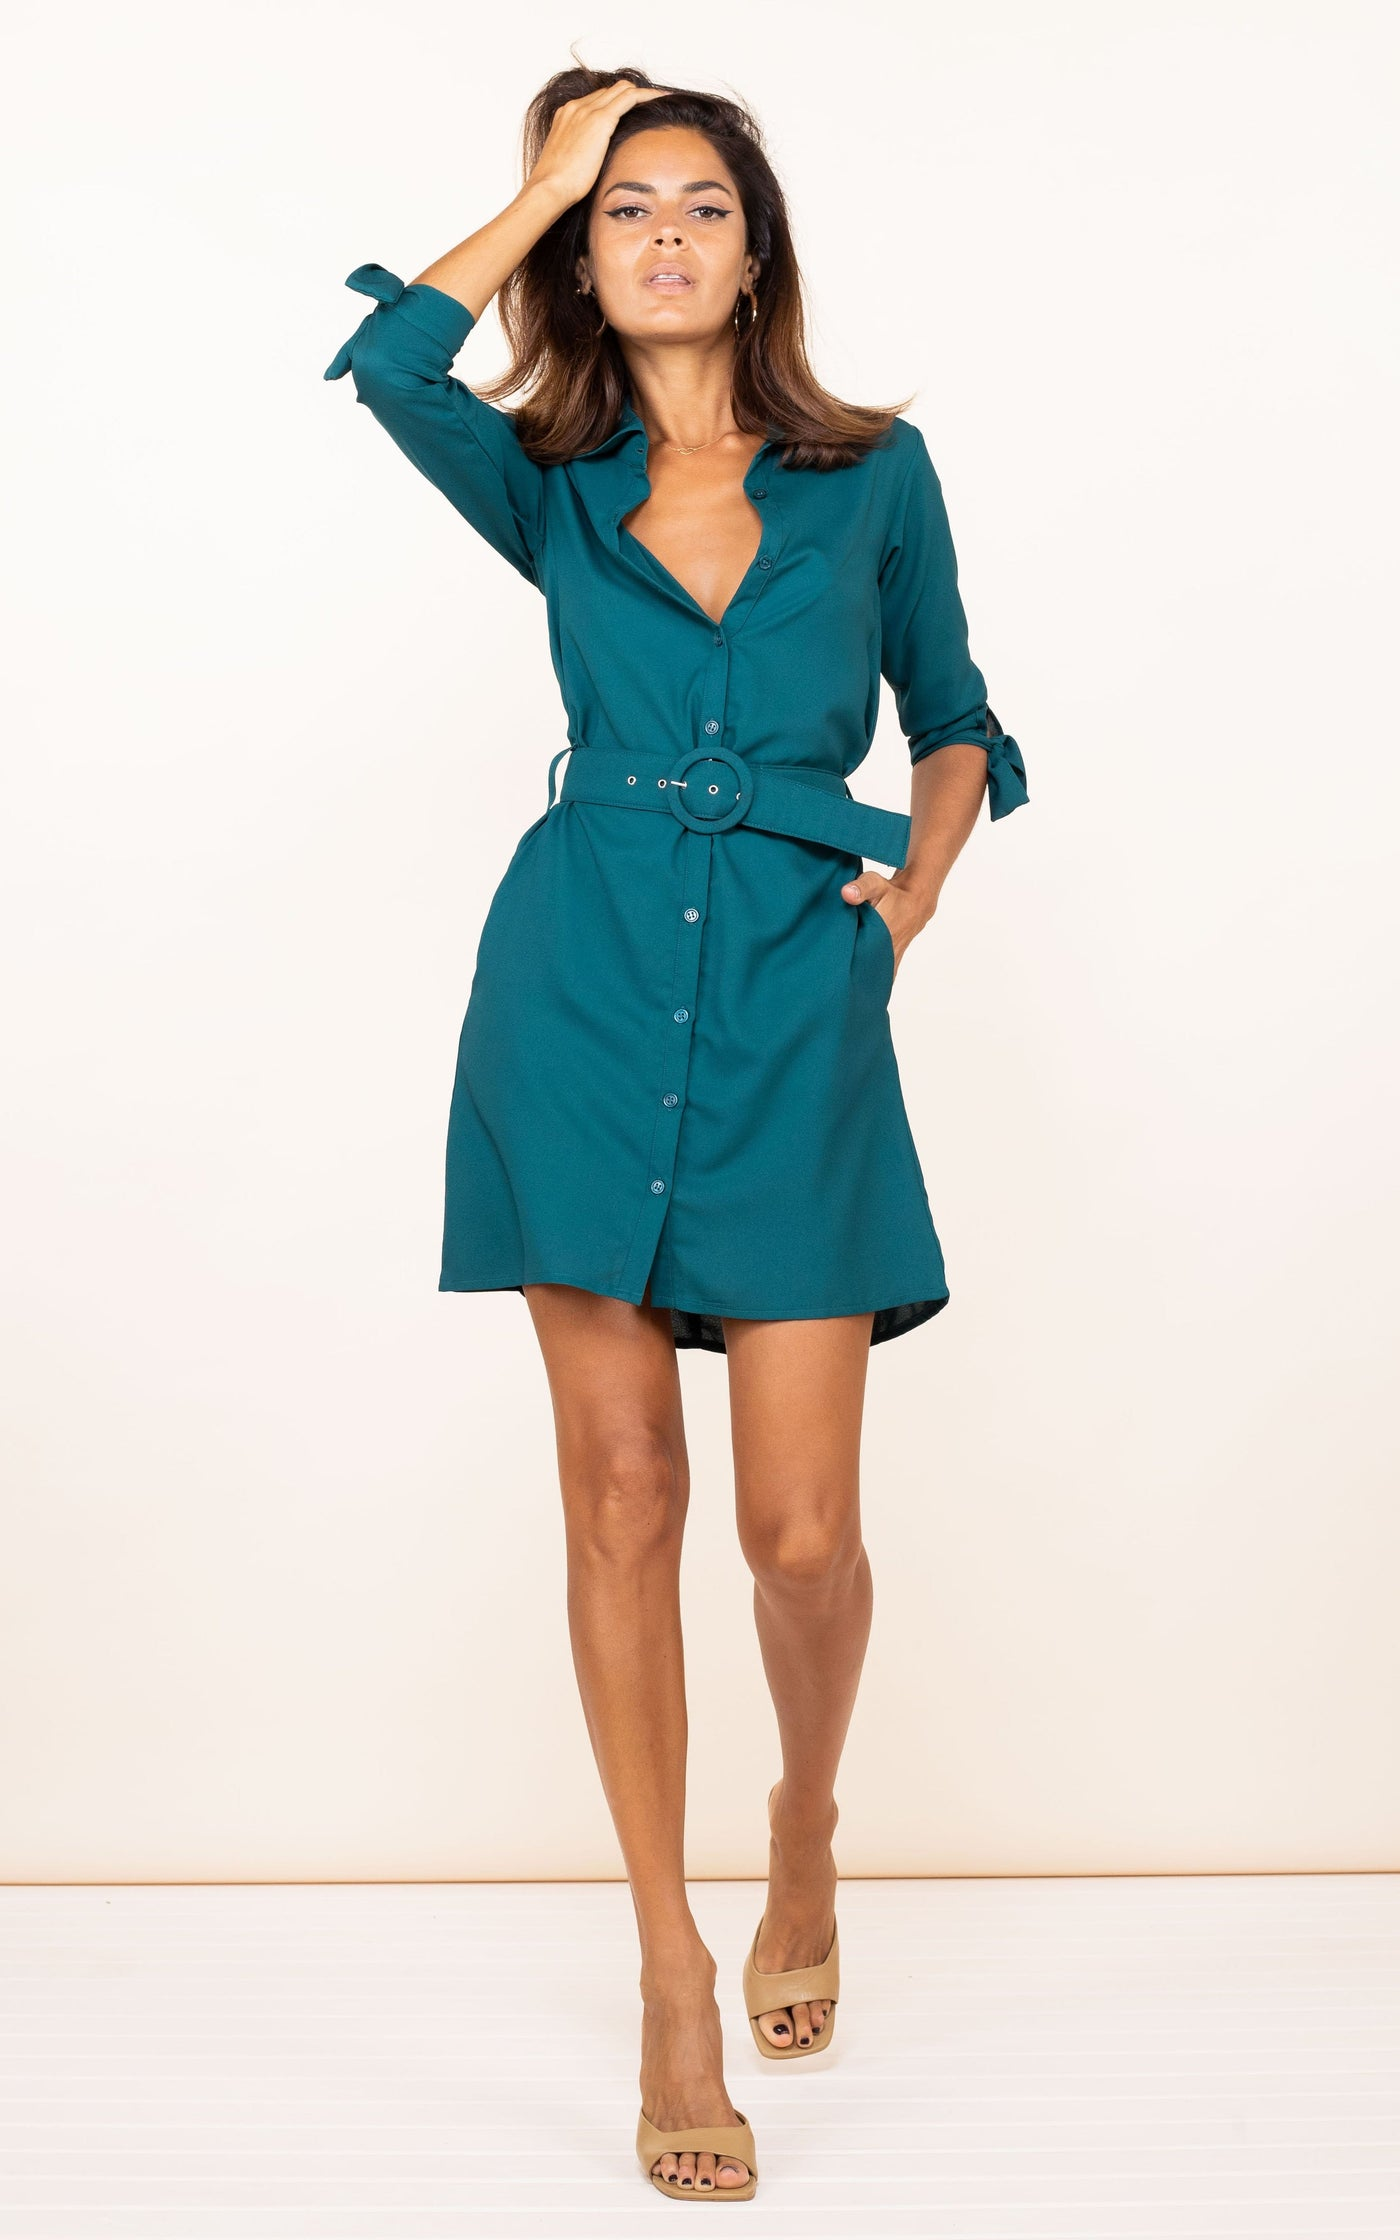 Dancing Leopard model faces forward with hand in hair wearing Jonah Mini Shirt Dress in pine green